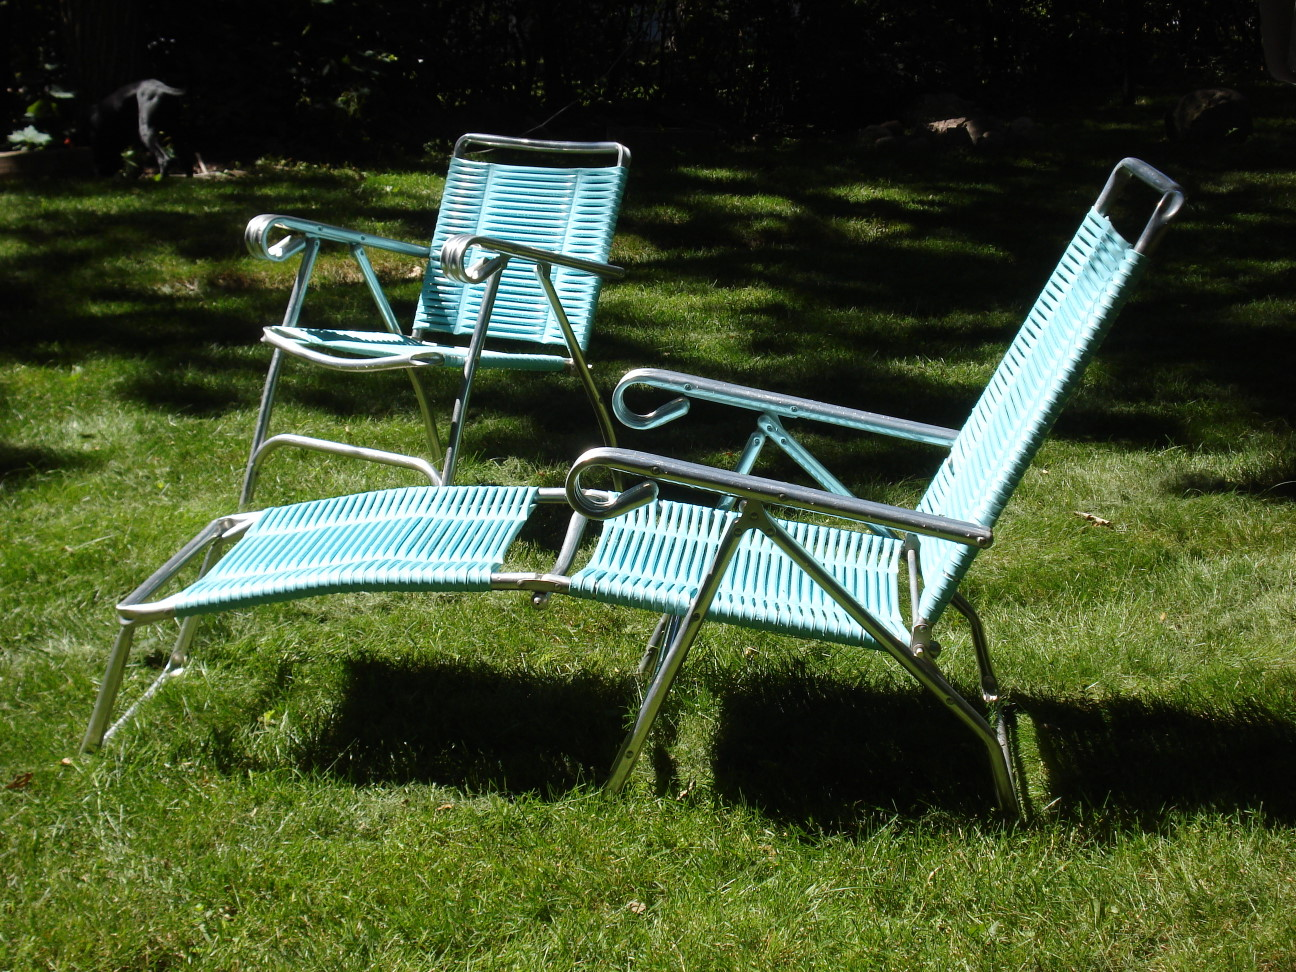 Retro Lawn Chair and Lounge